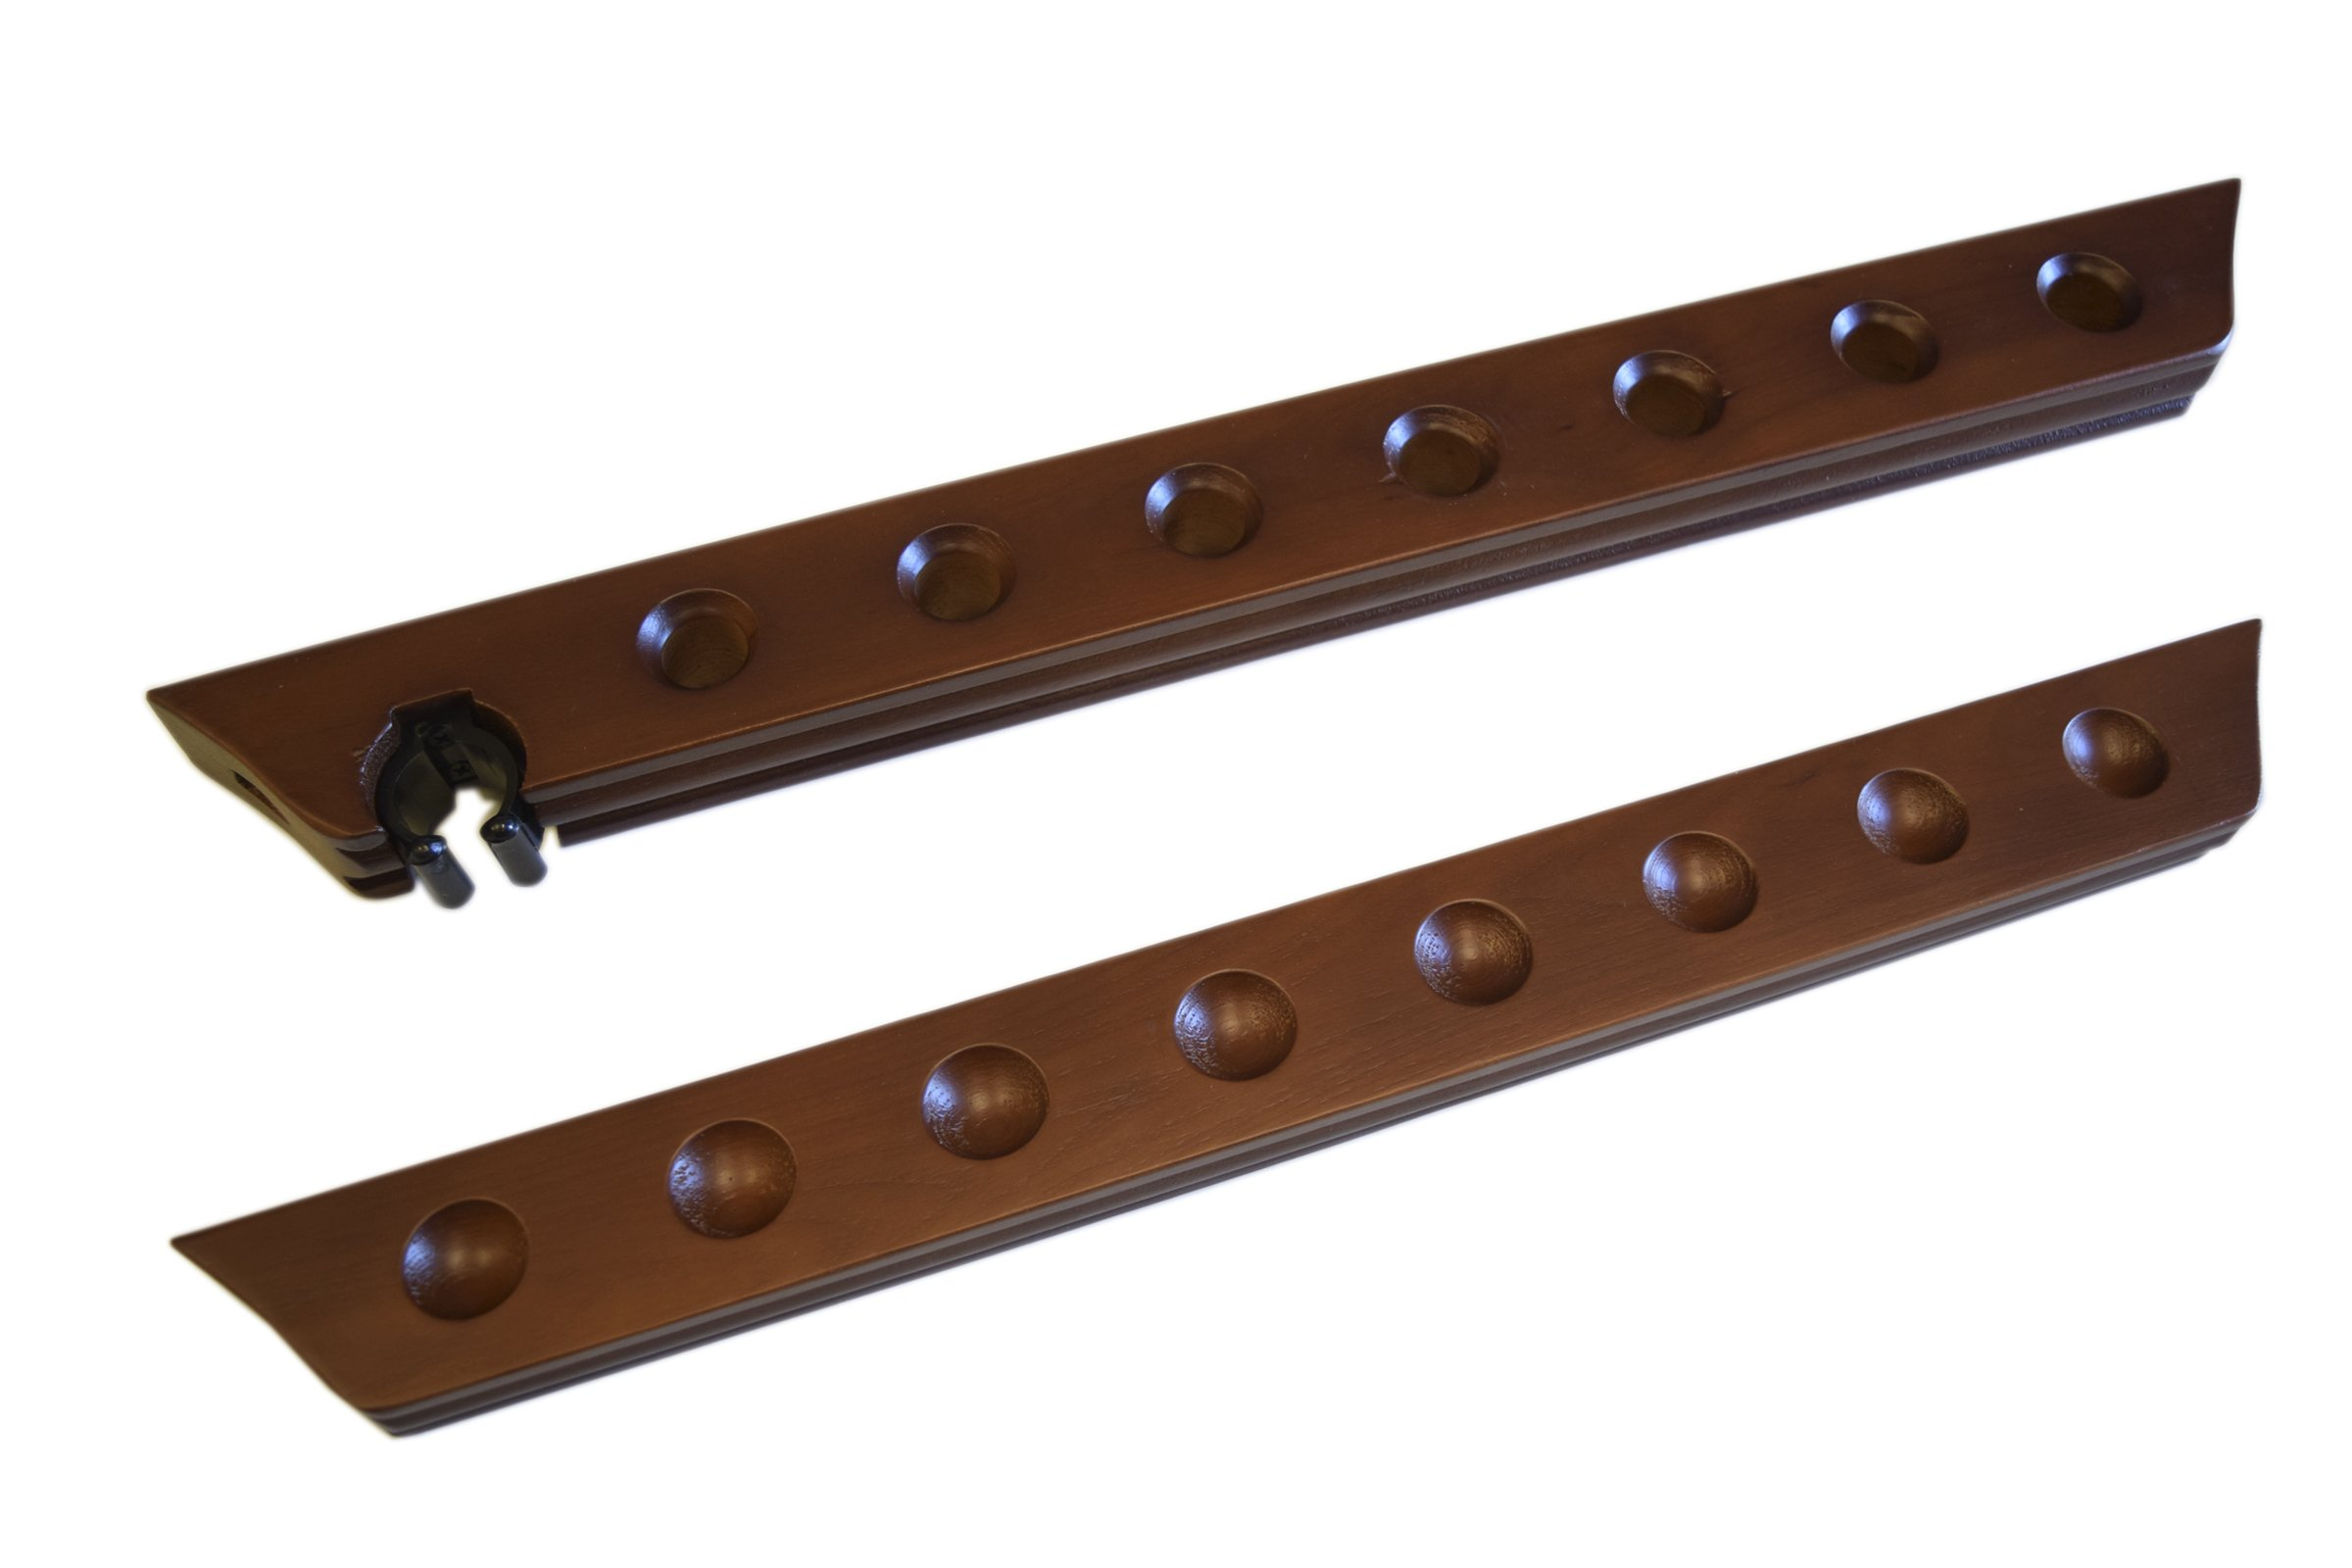 8 Pool Cue Rack - Billiard Stick Wall Cue Rack, Holds 1 Bridge